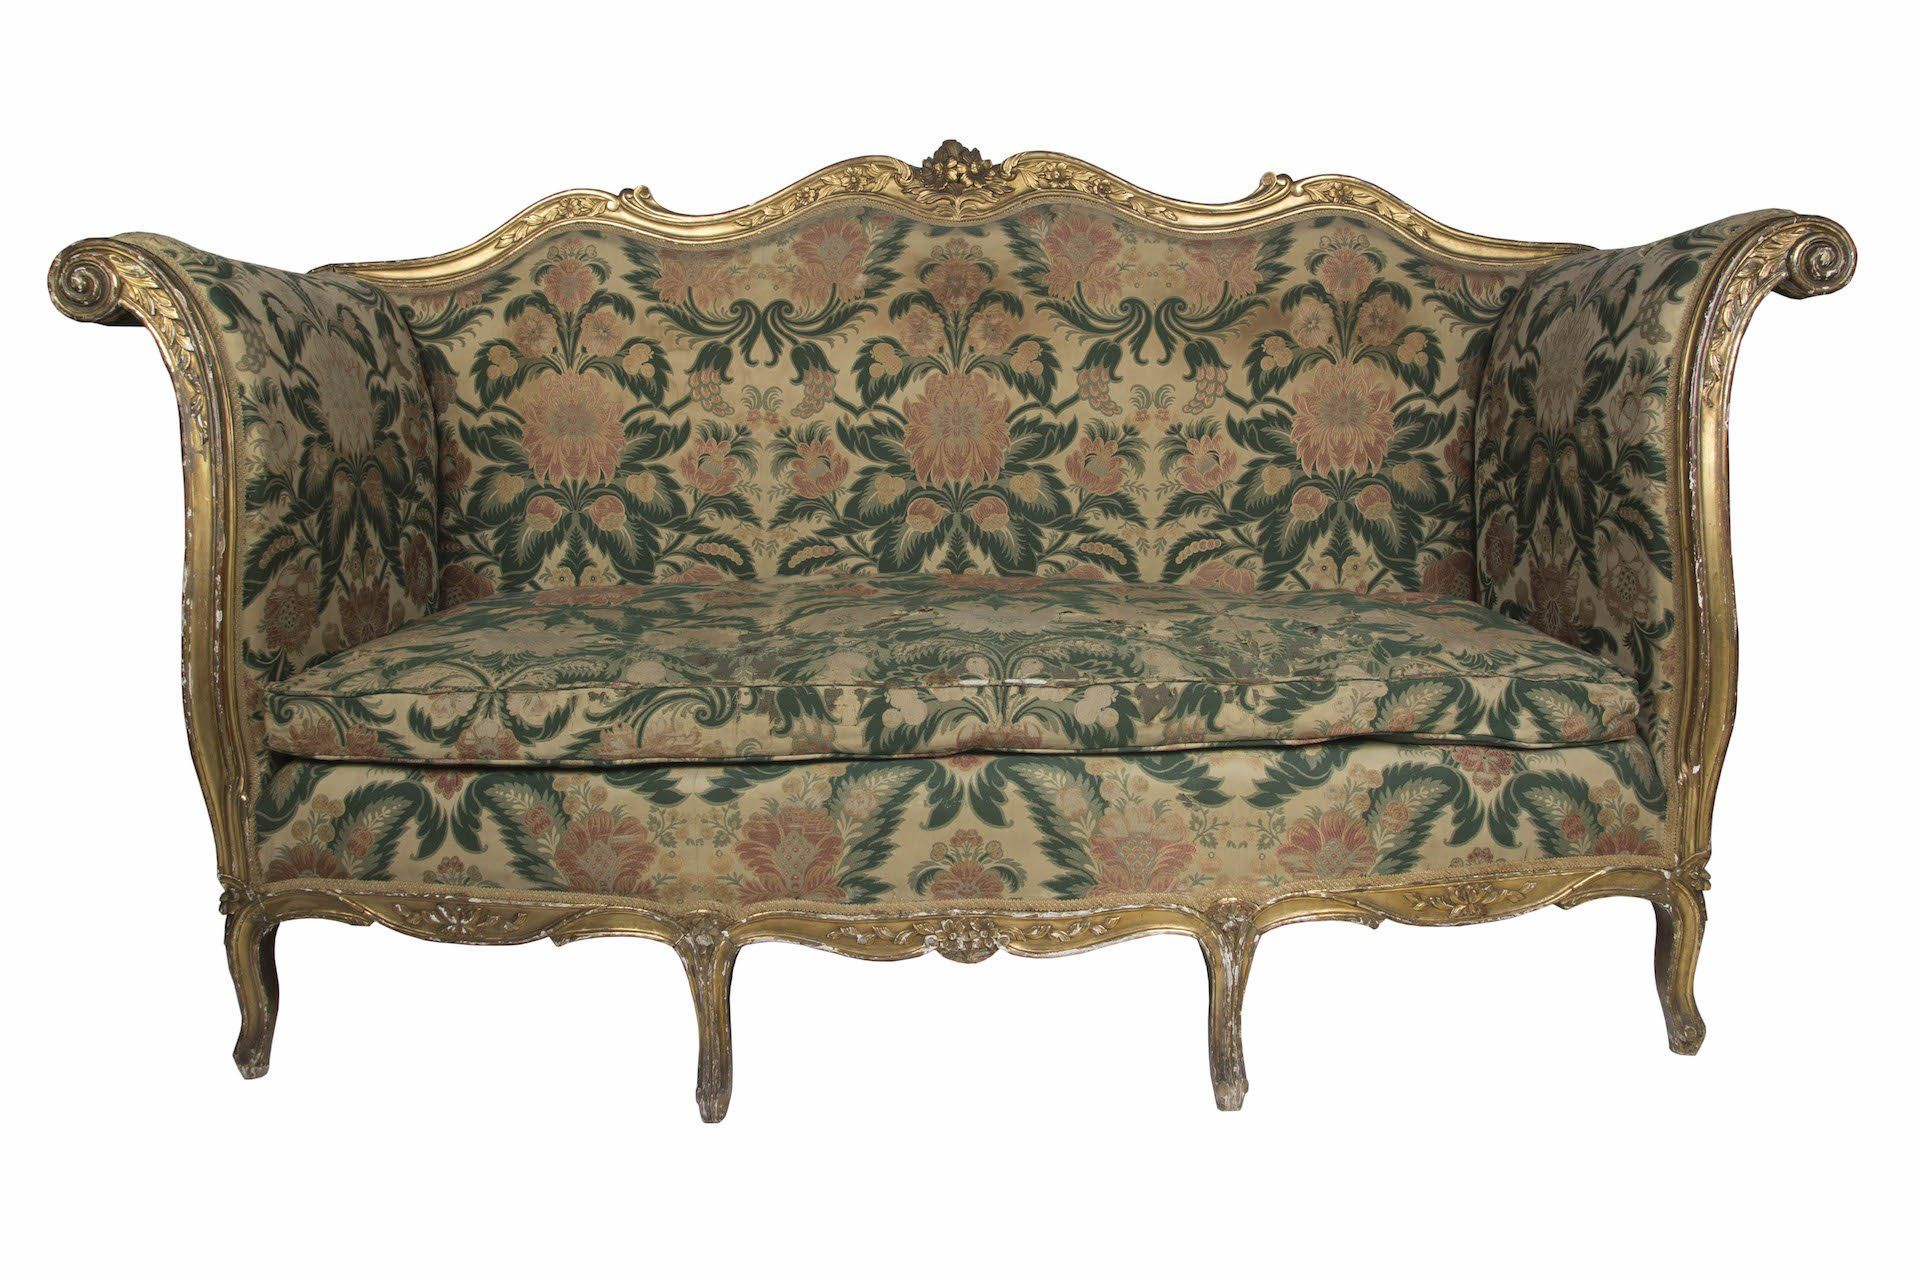 1875 English Giltwood Sofa